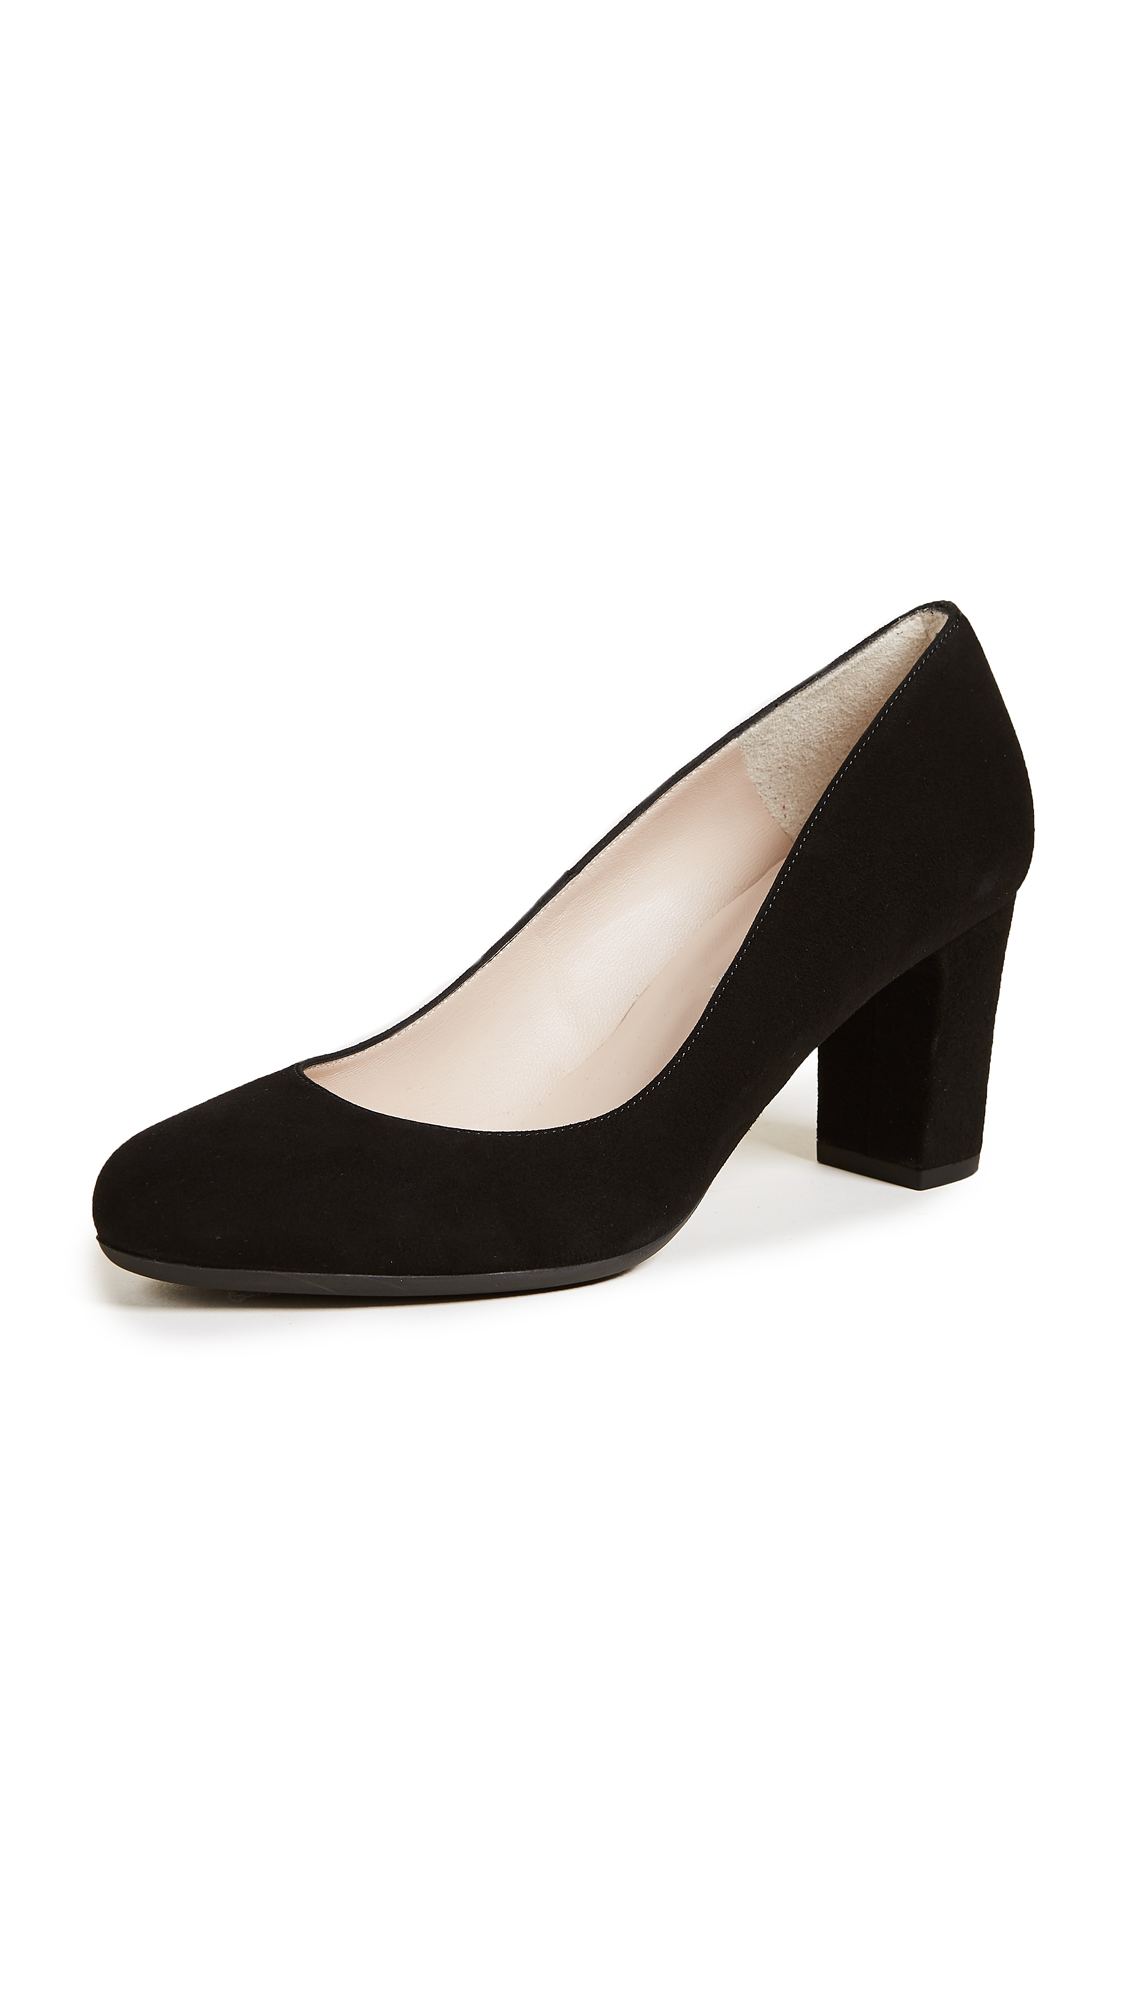 L.K. Bennett Sersha Pumps - Black